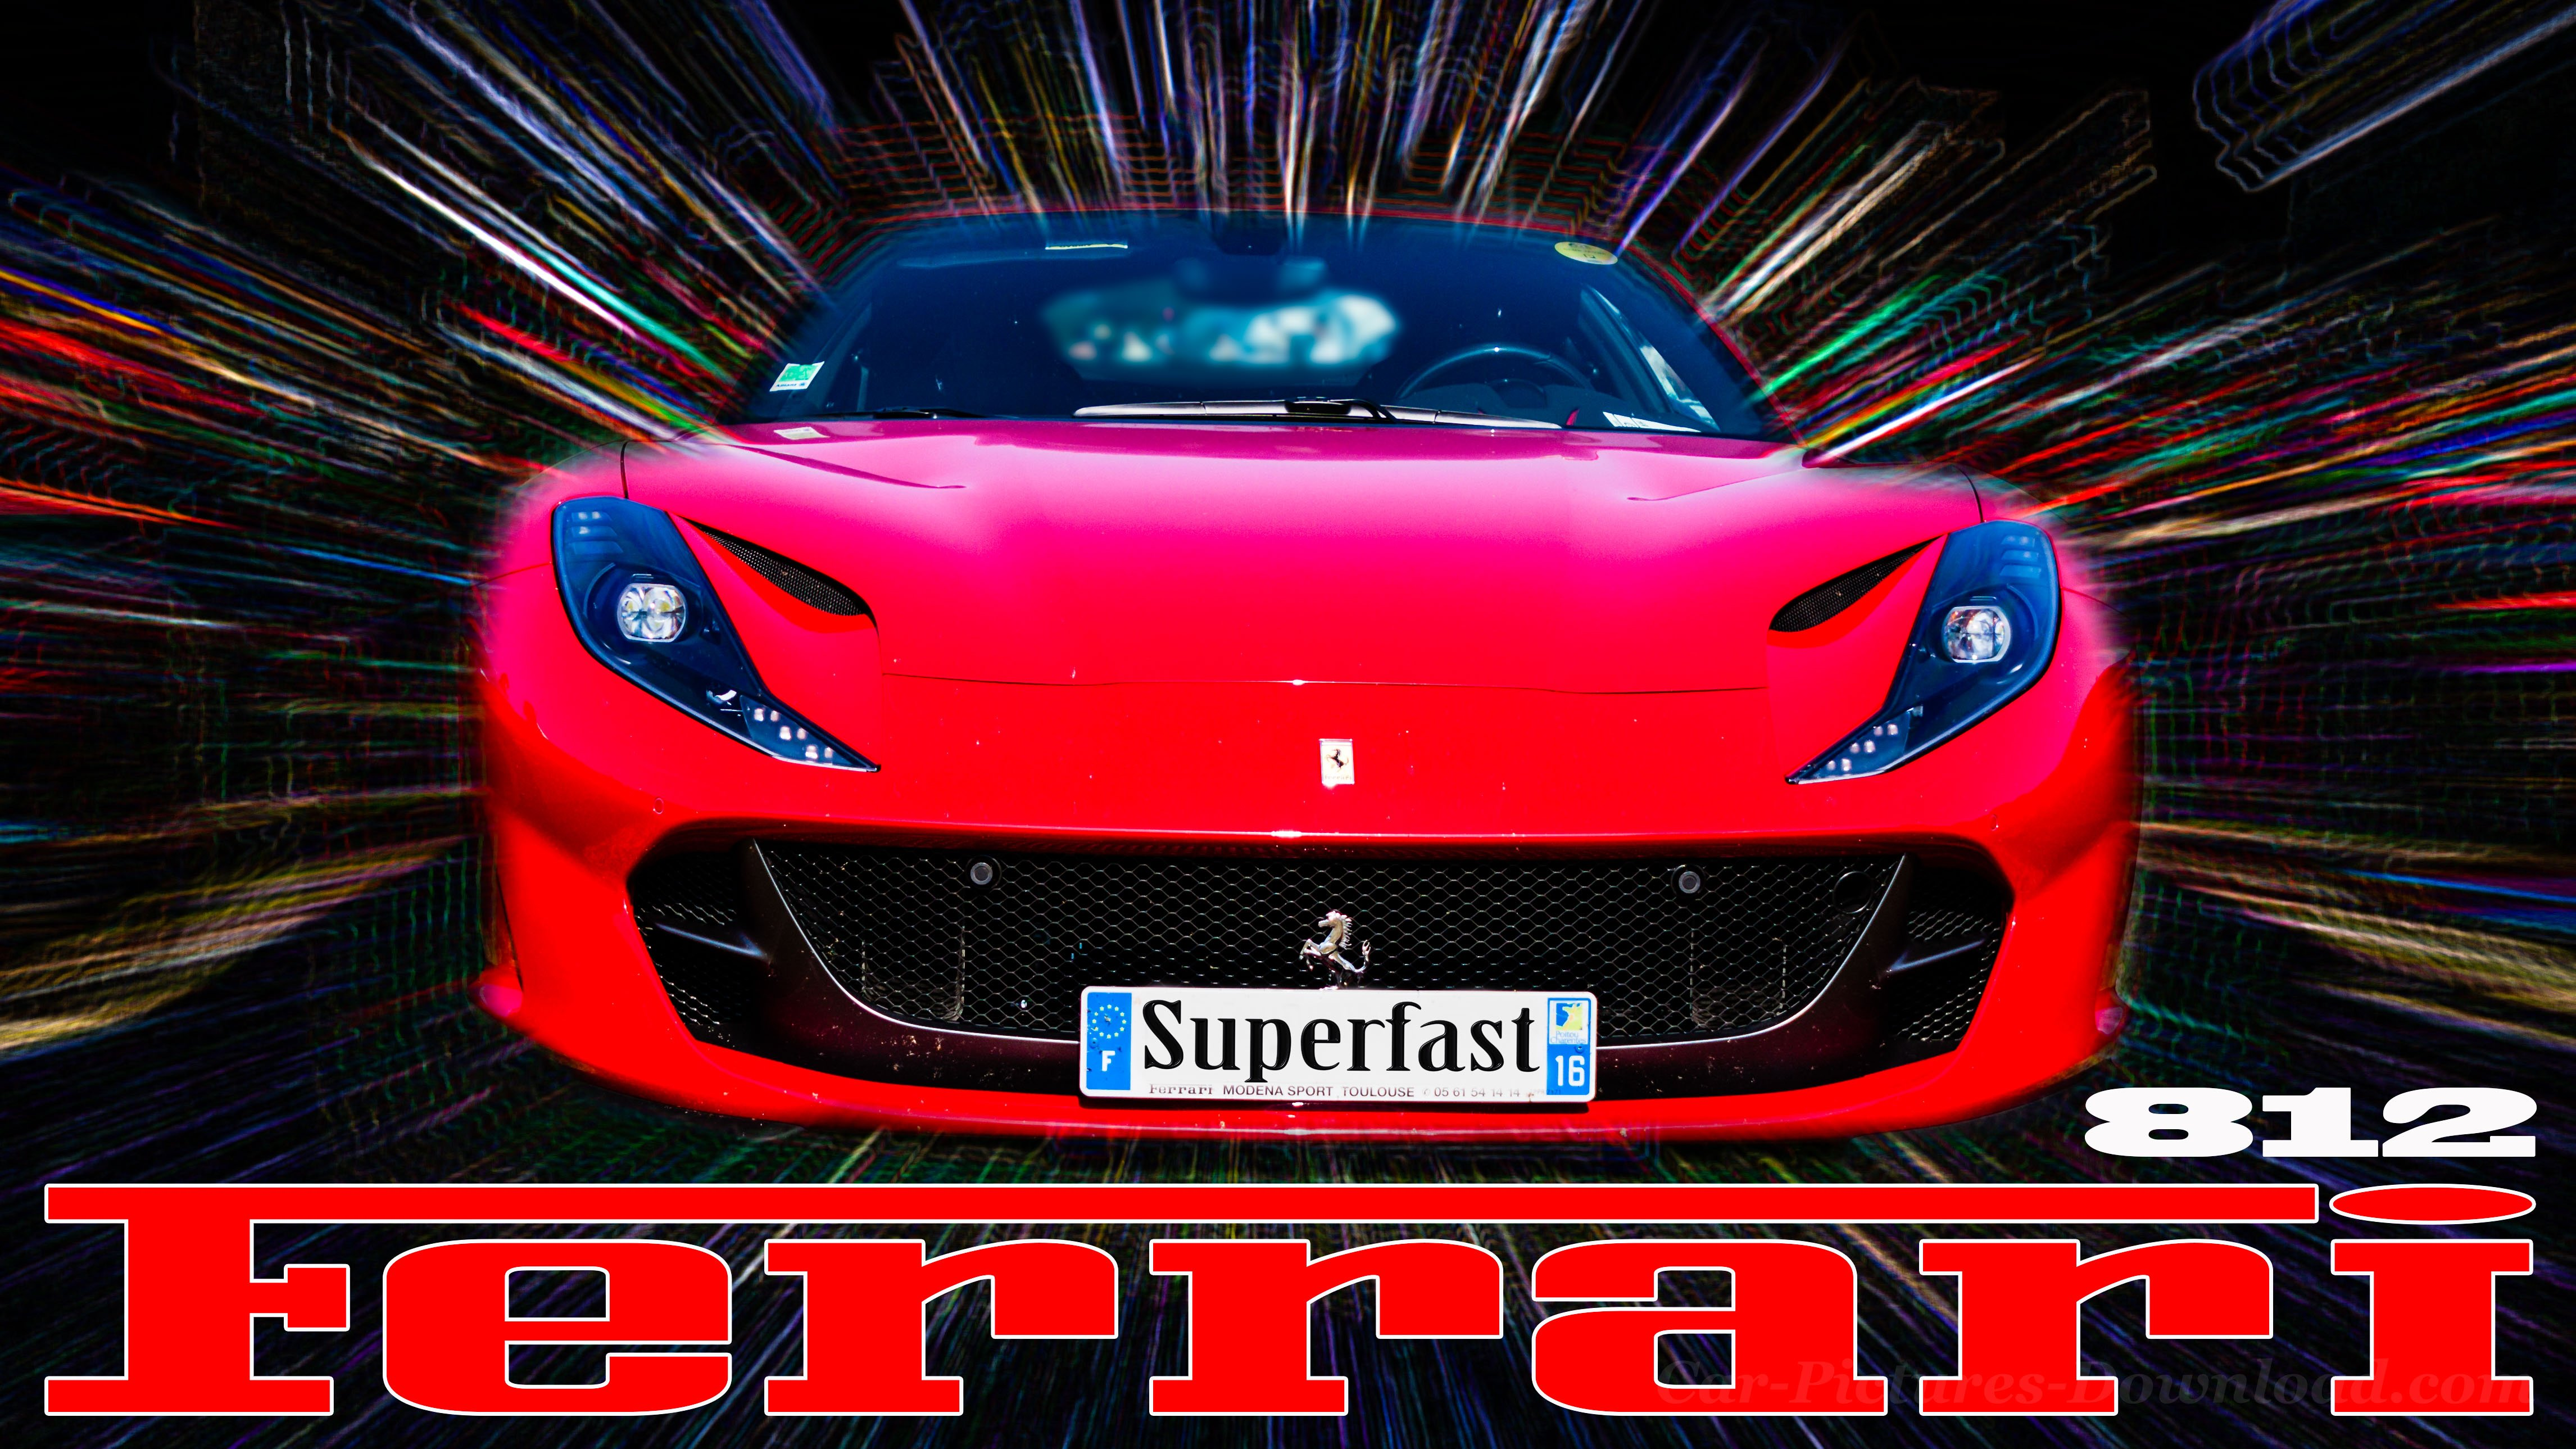 Ferrari Wallpapers HD   For All Devices In Best Quality 4584x2578